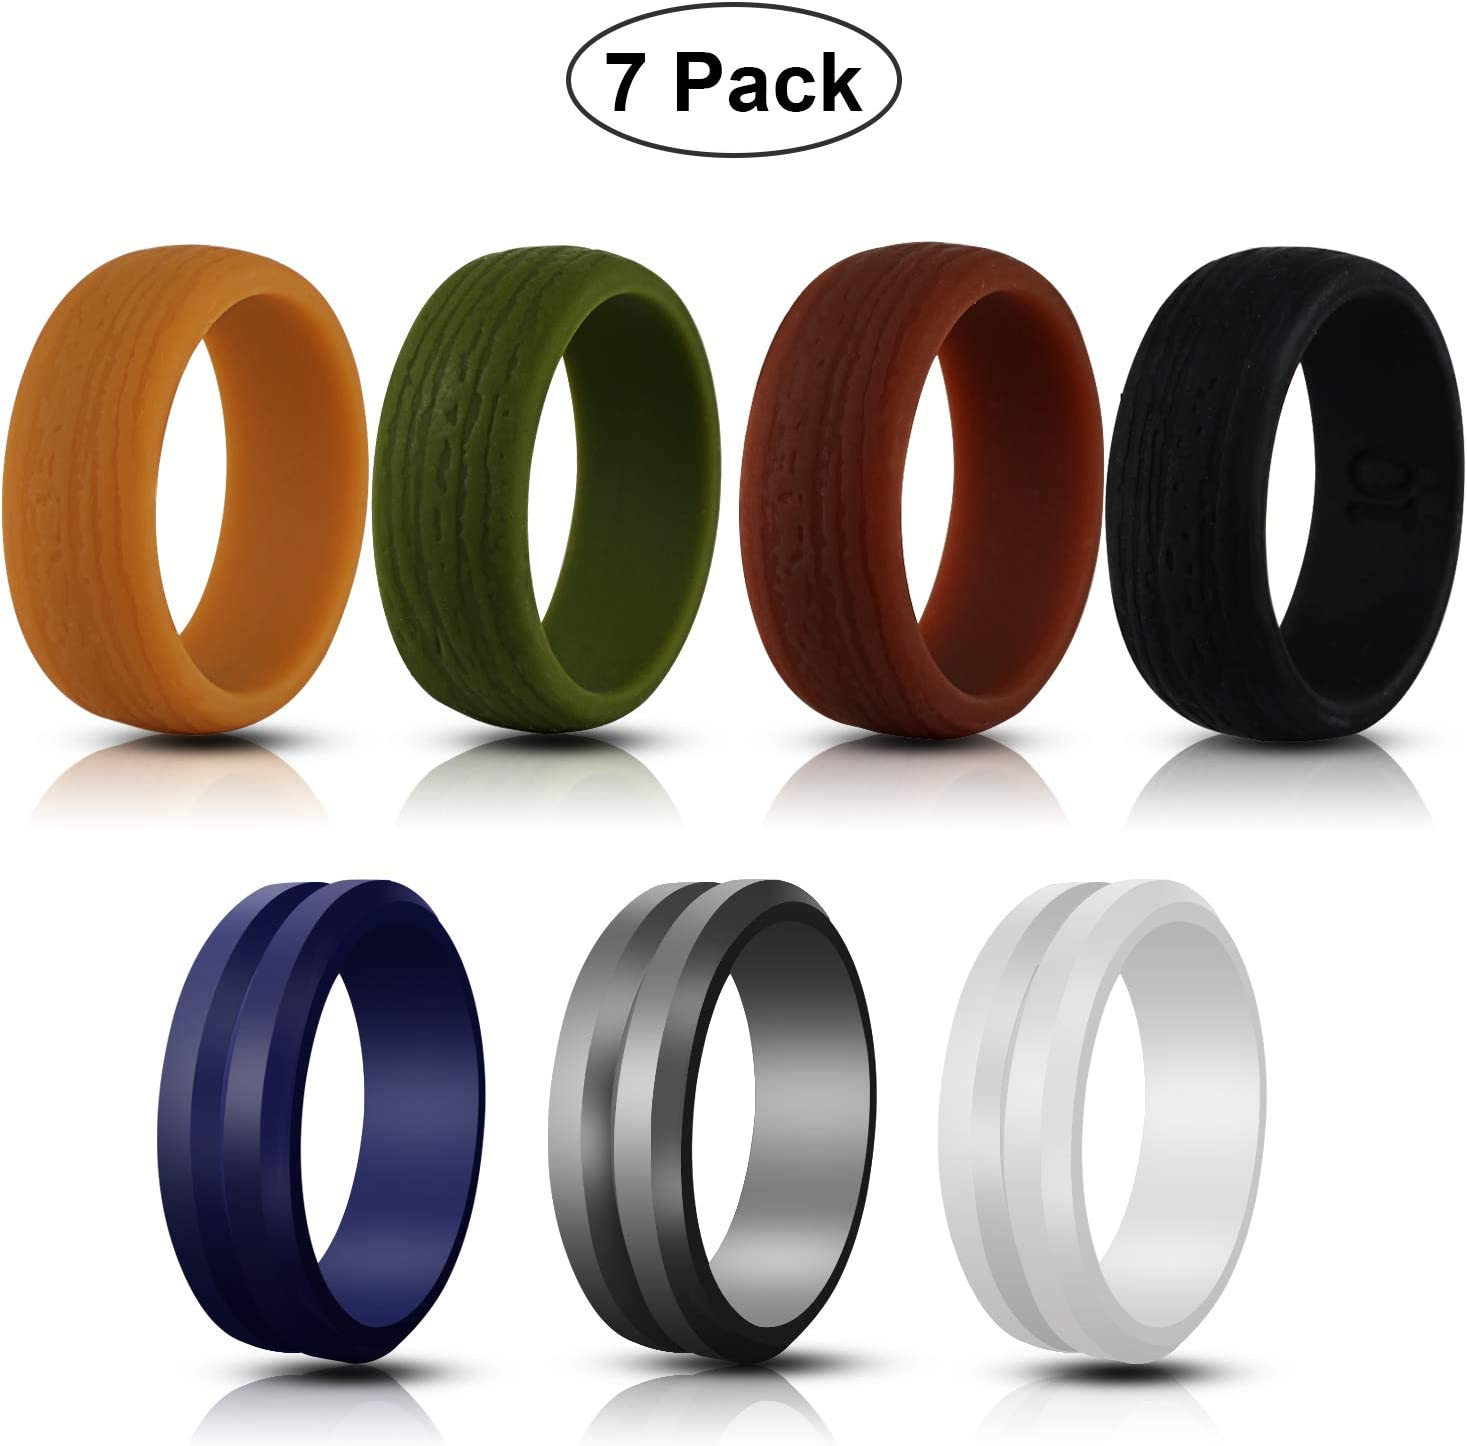 7 Pack Waterproof Breathable Mens Rubber Wedding Bands Ufanore Silicone Wedding Ring for Men Size 8 9 10 11 12 Wedding Rings for Crossfit Workout